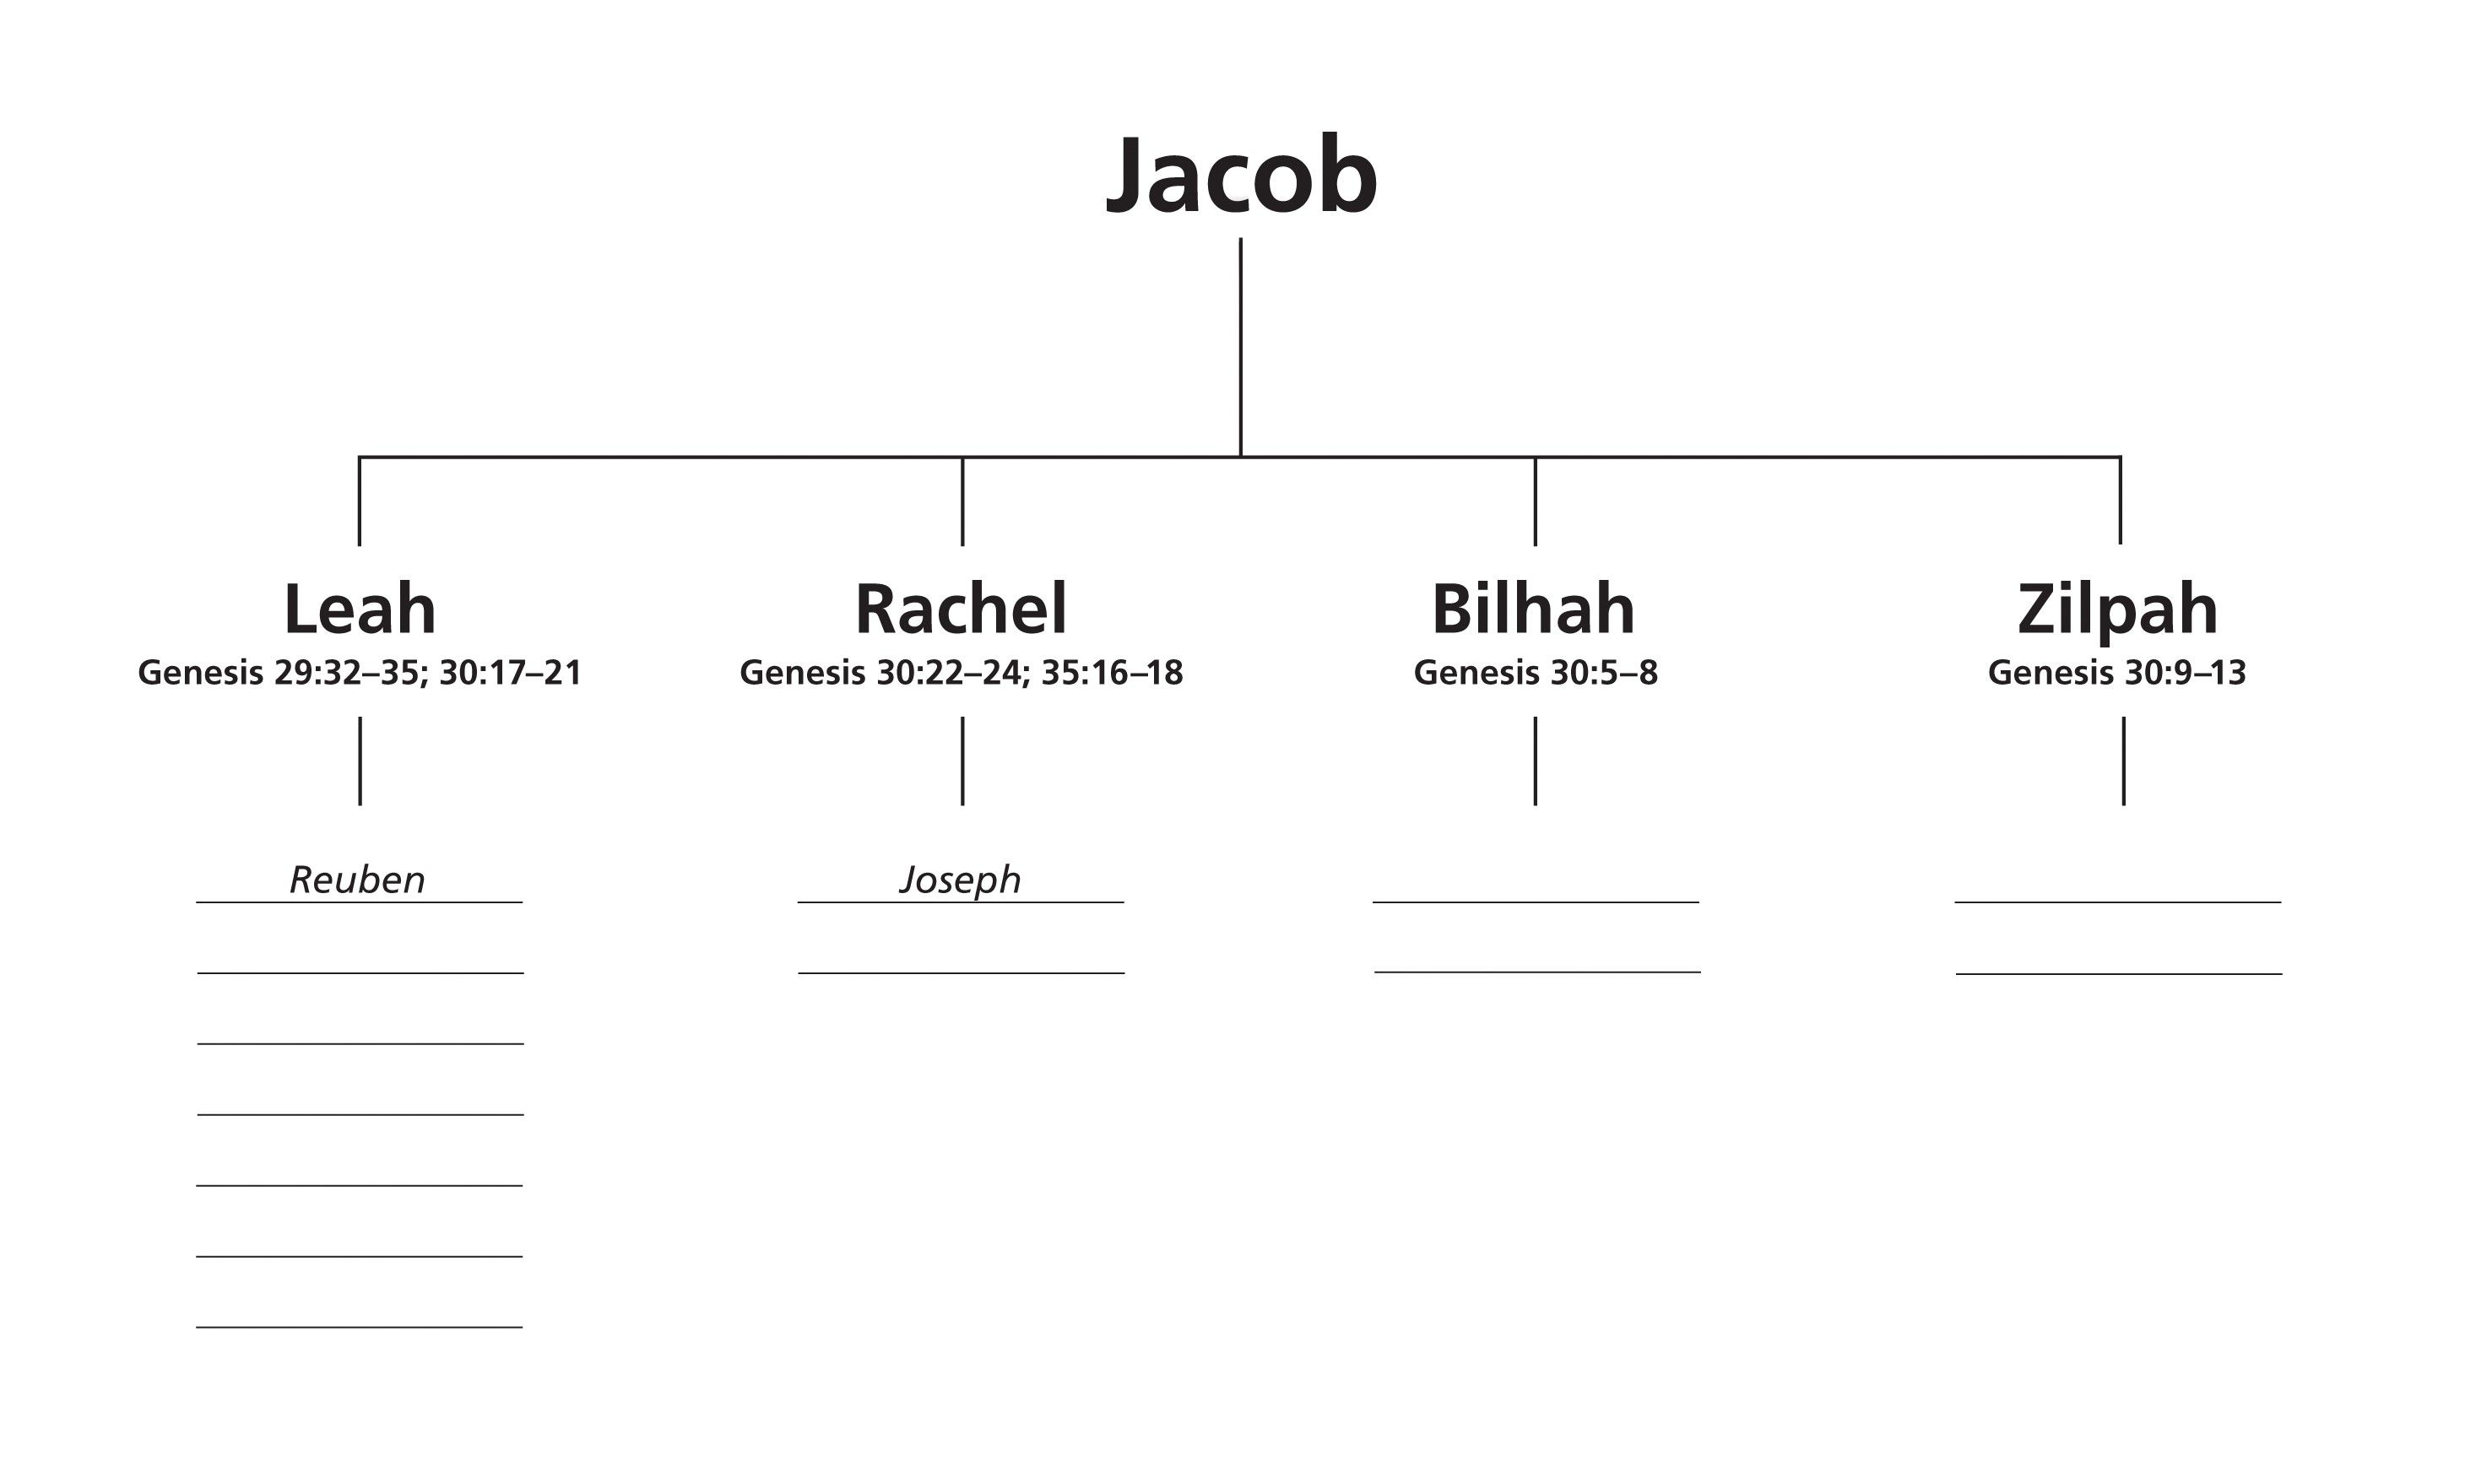 A worksheet that can be filled in with the names of Jacob's children.